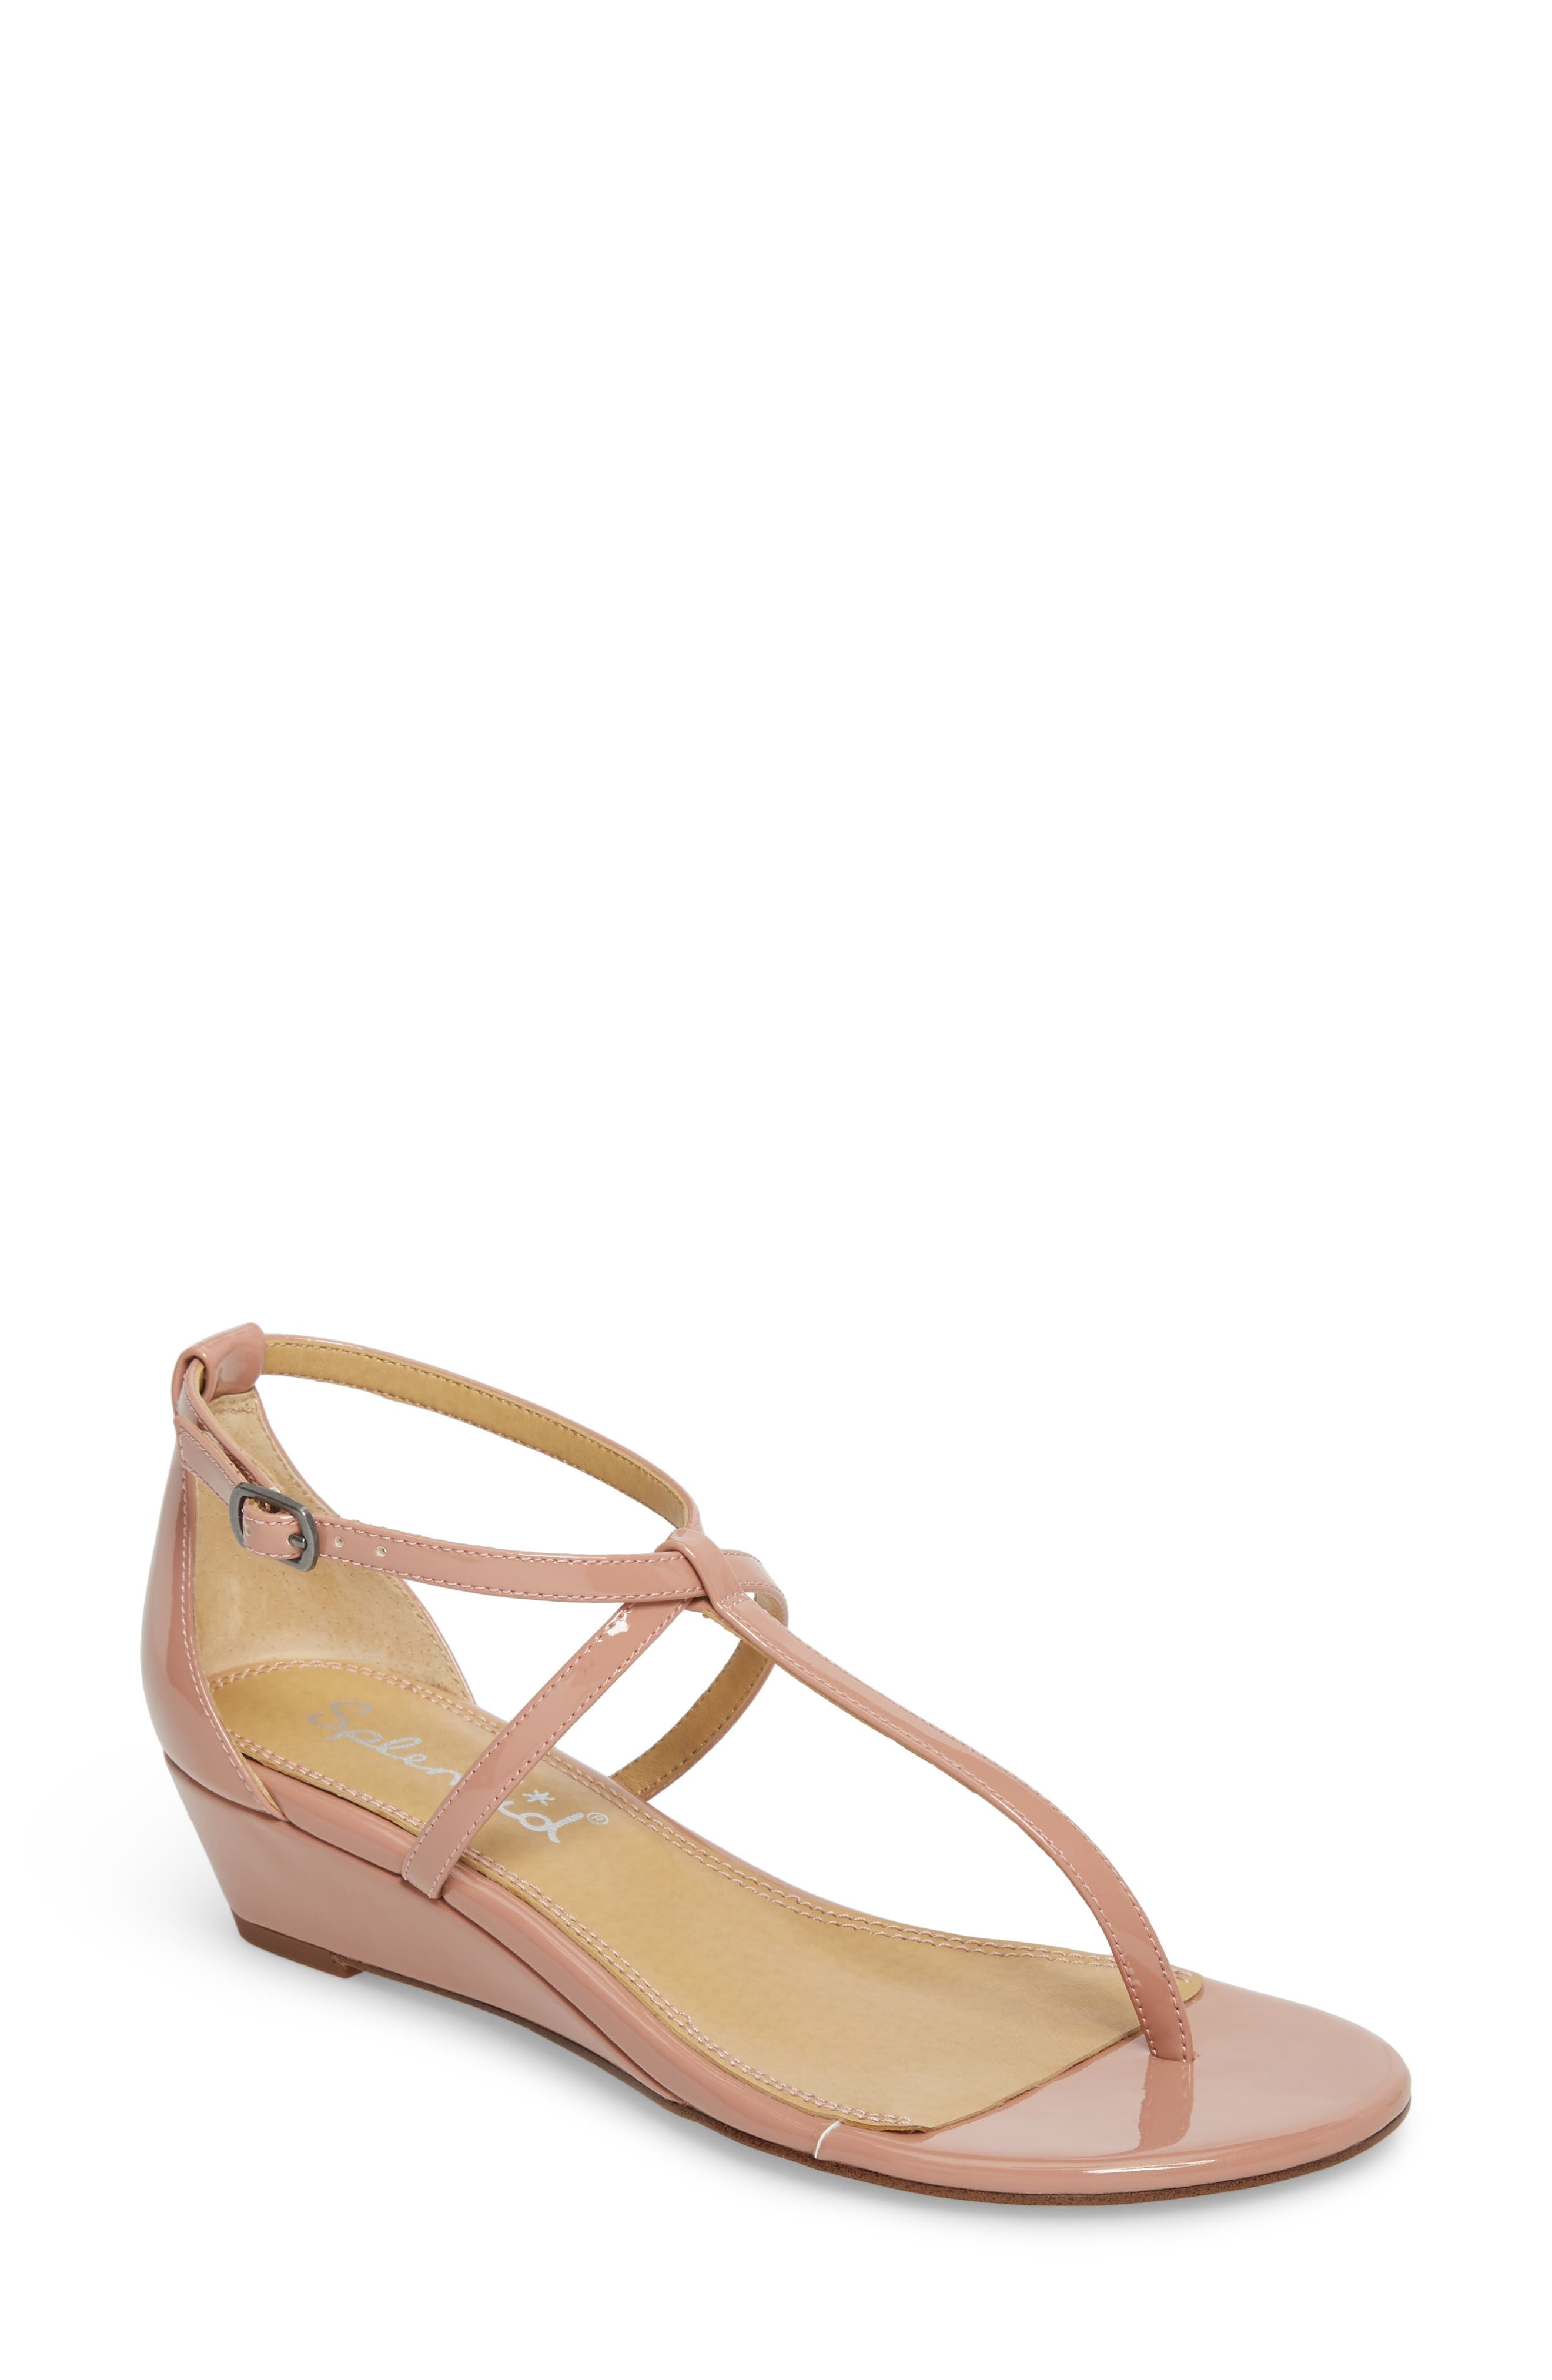 Bryce T-Strap Wedge Sandal,                             Main thumbnail 1, color,                             DARK BLUSH PATENT